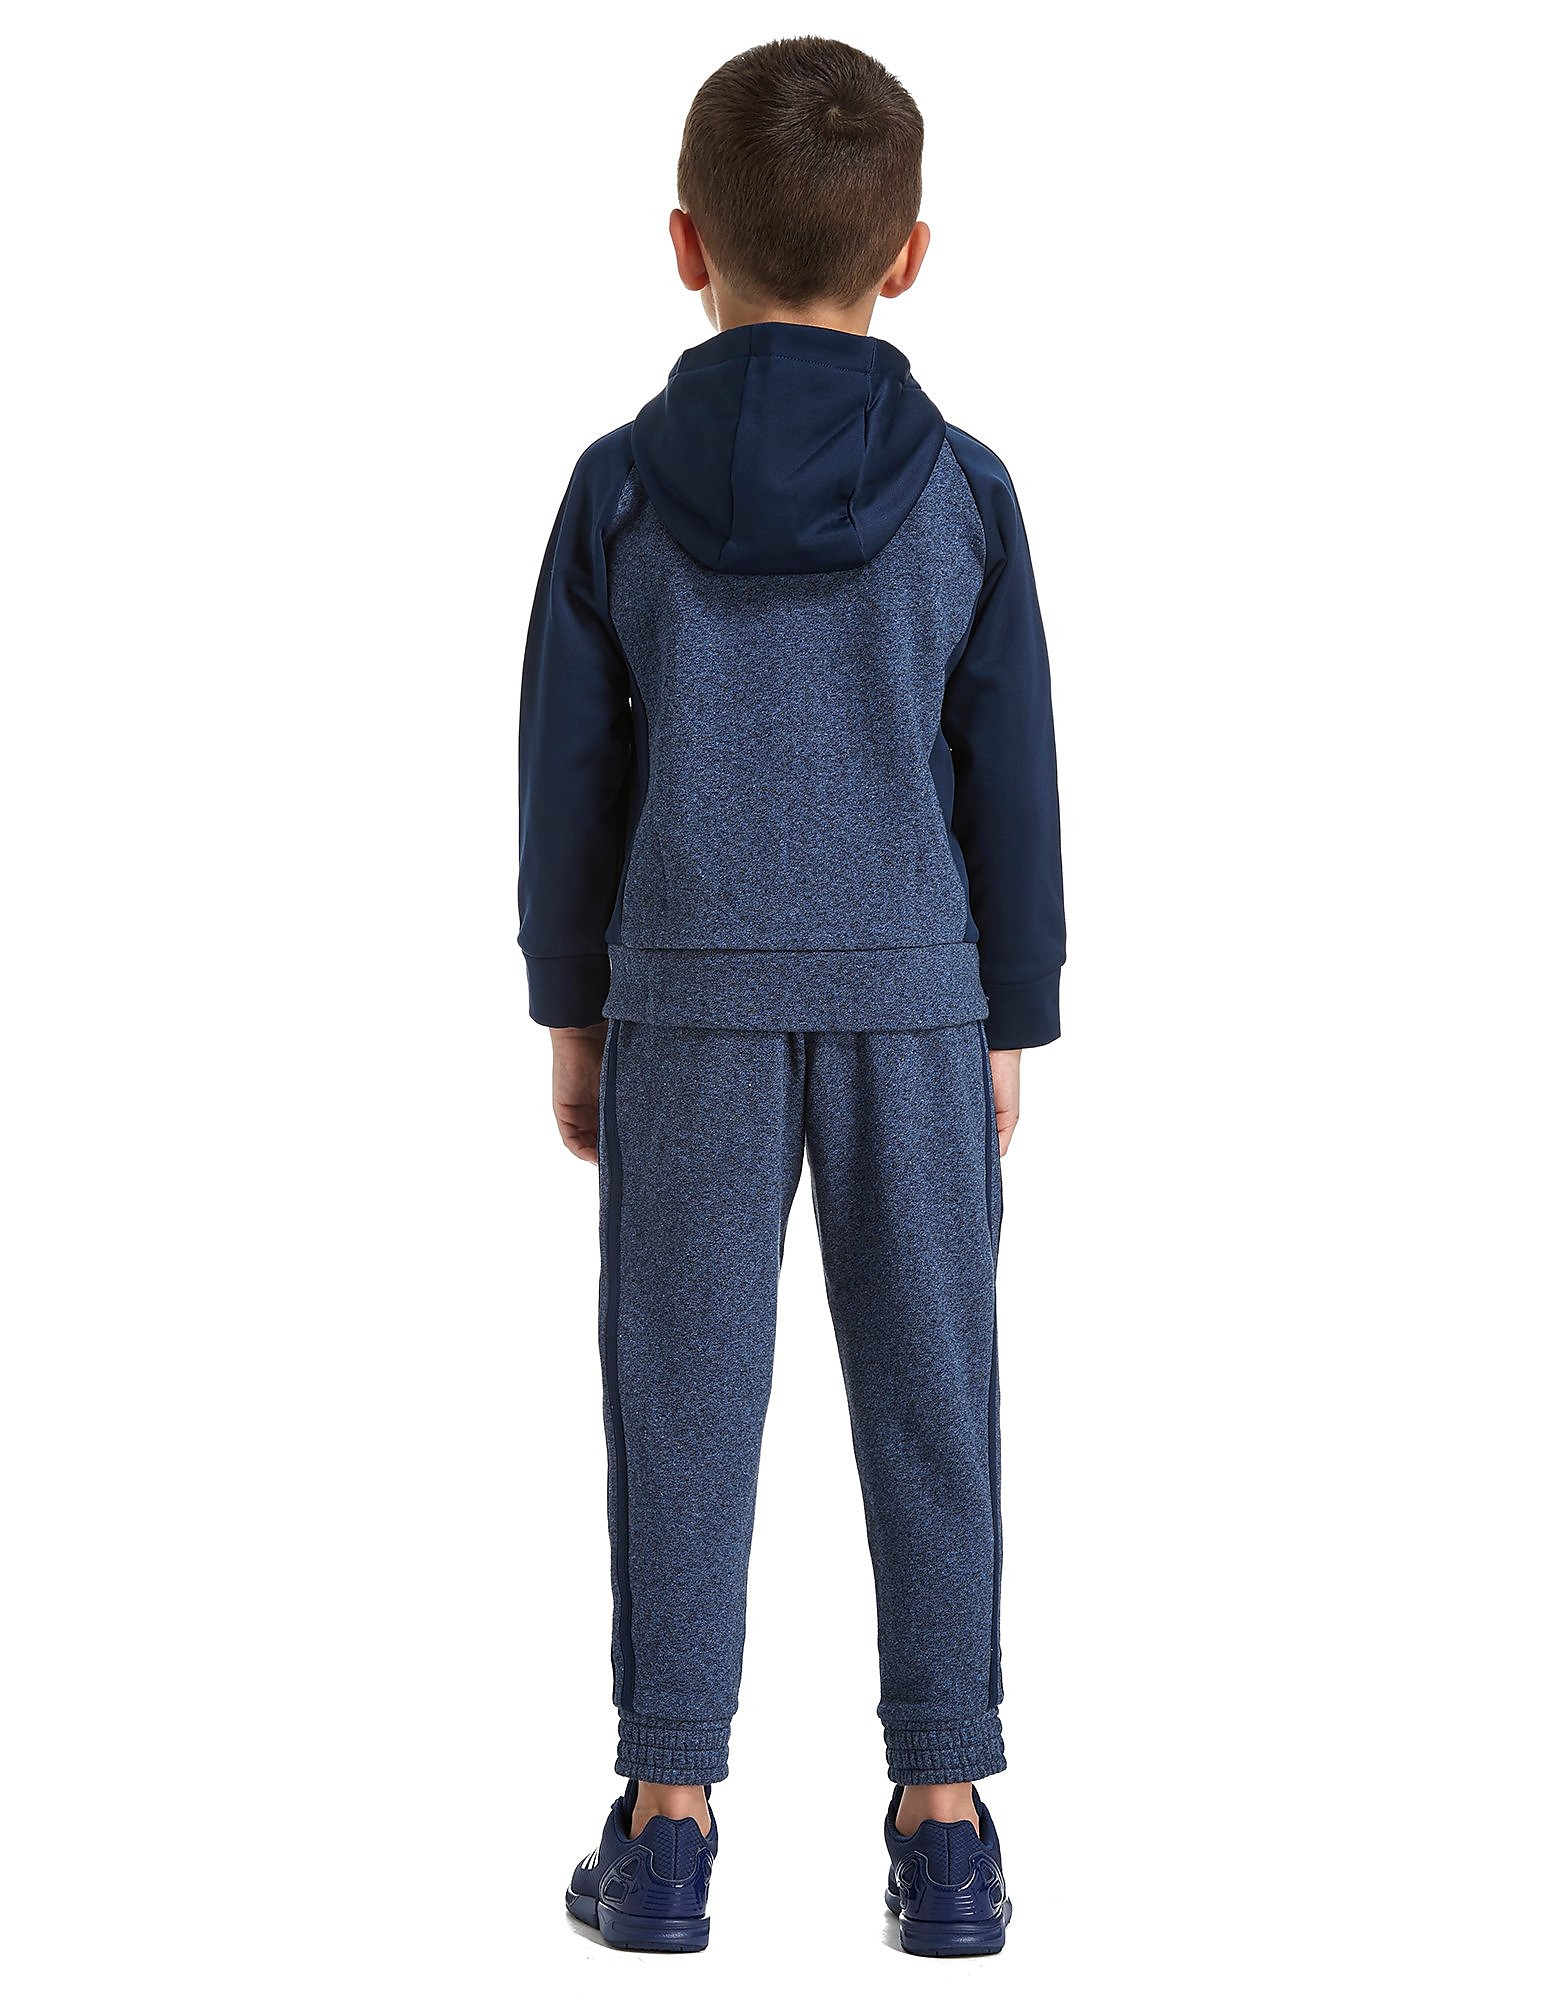 adidas Ensemble Enfant Hybrid Fleece